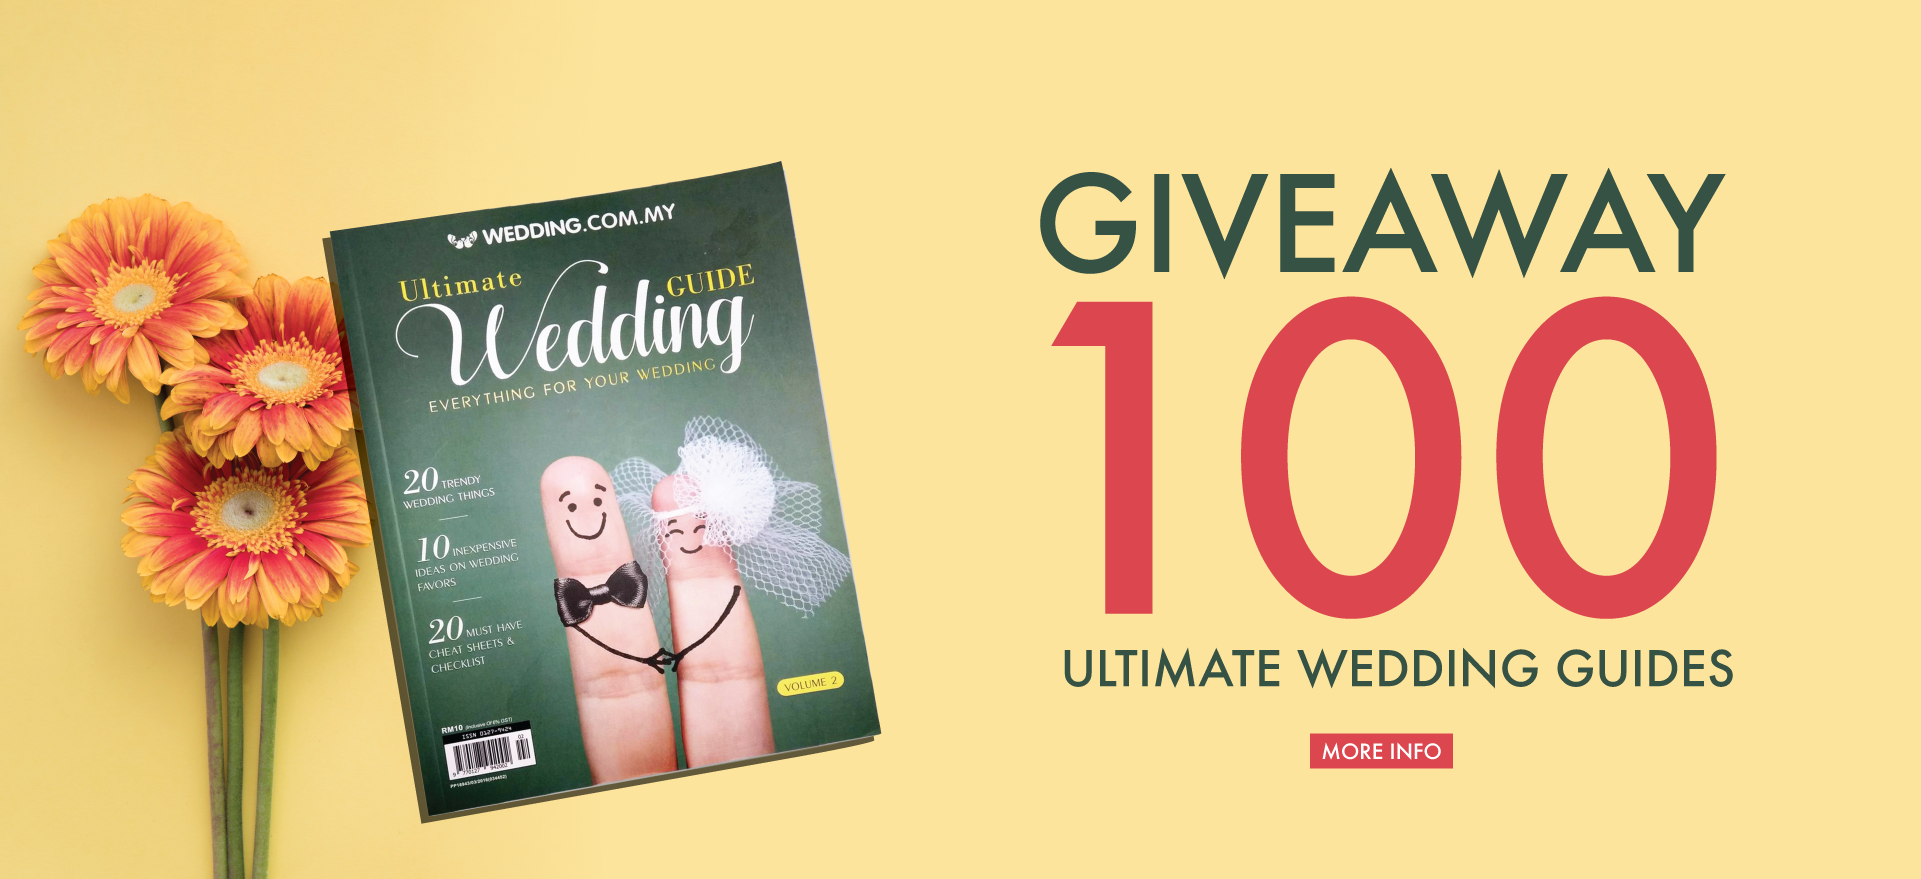 GET YOUR FREE 2018 WEDDING ULTIMATE GUIDEBOOK